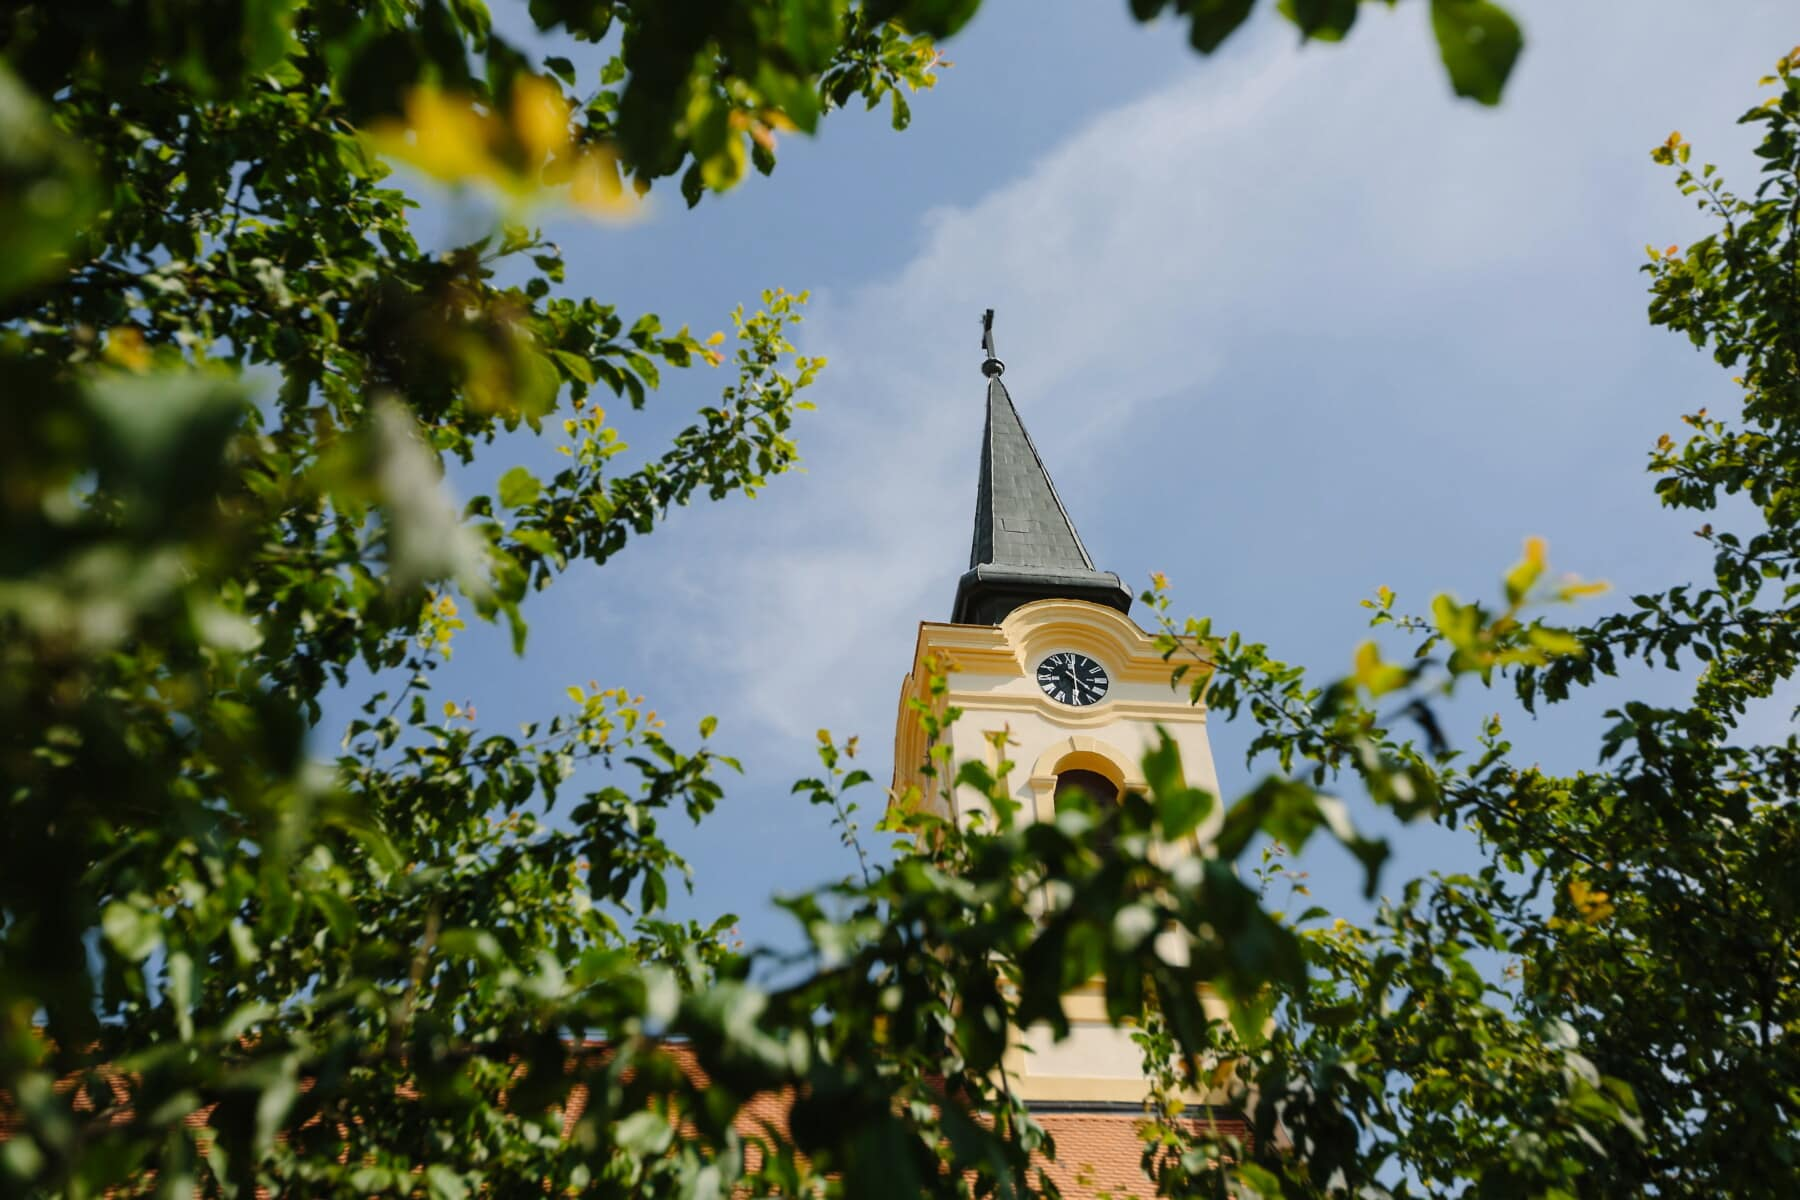 church, church tower, yellowish, facade, cross, distance, analog clock, cathedral, architecture, building